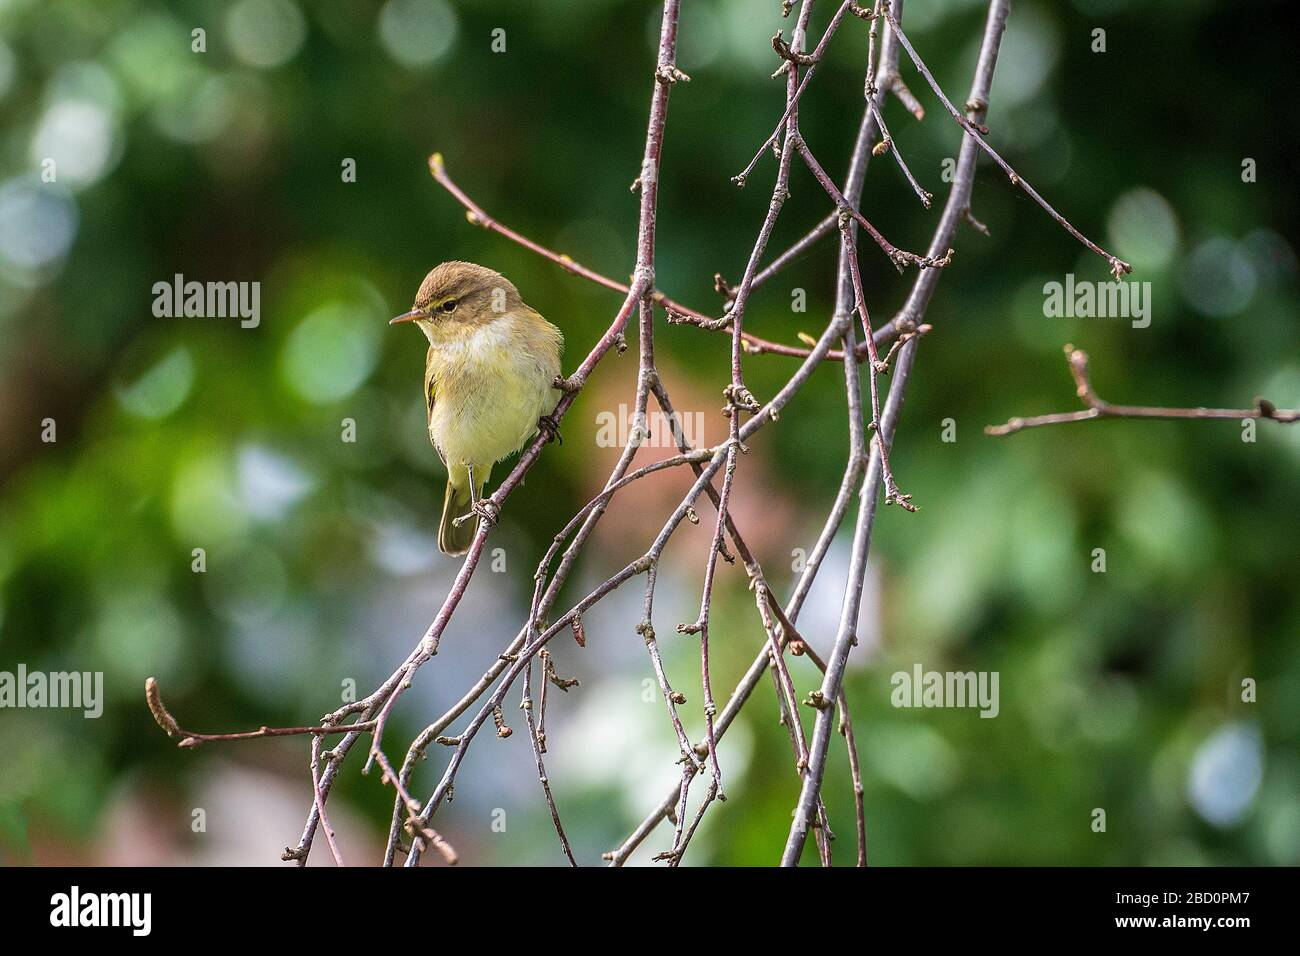 Common garden bird the Chiffchaff in tree branches. Stock Photo